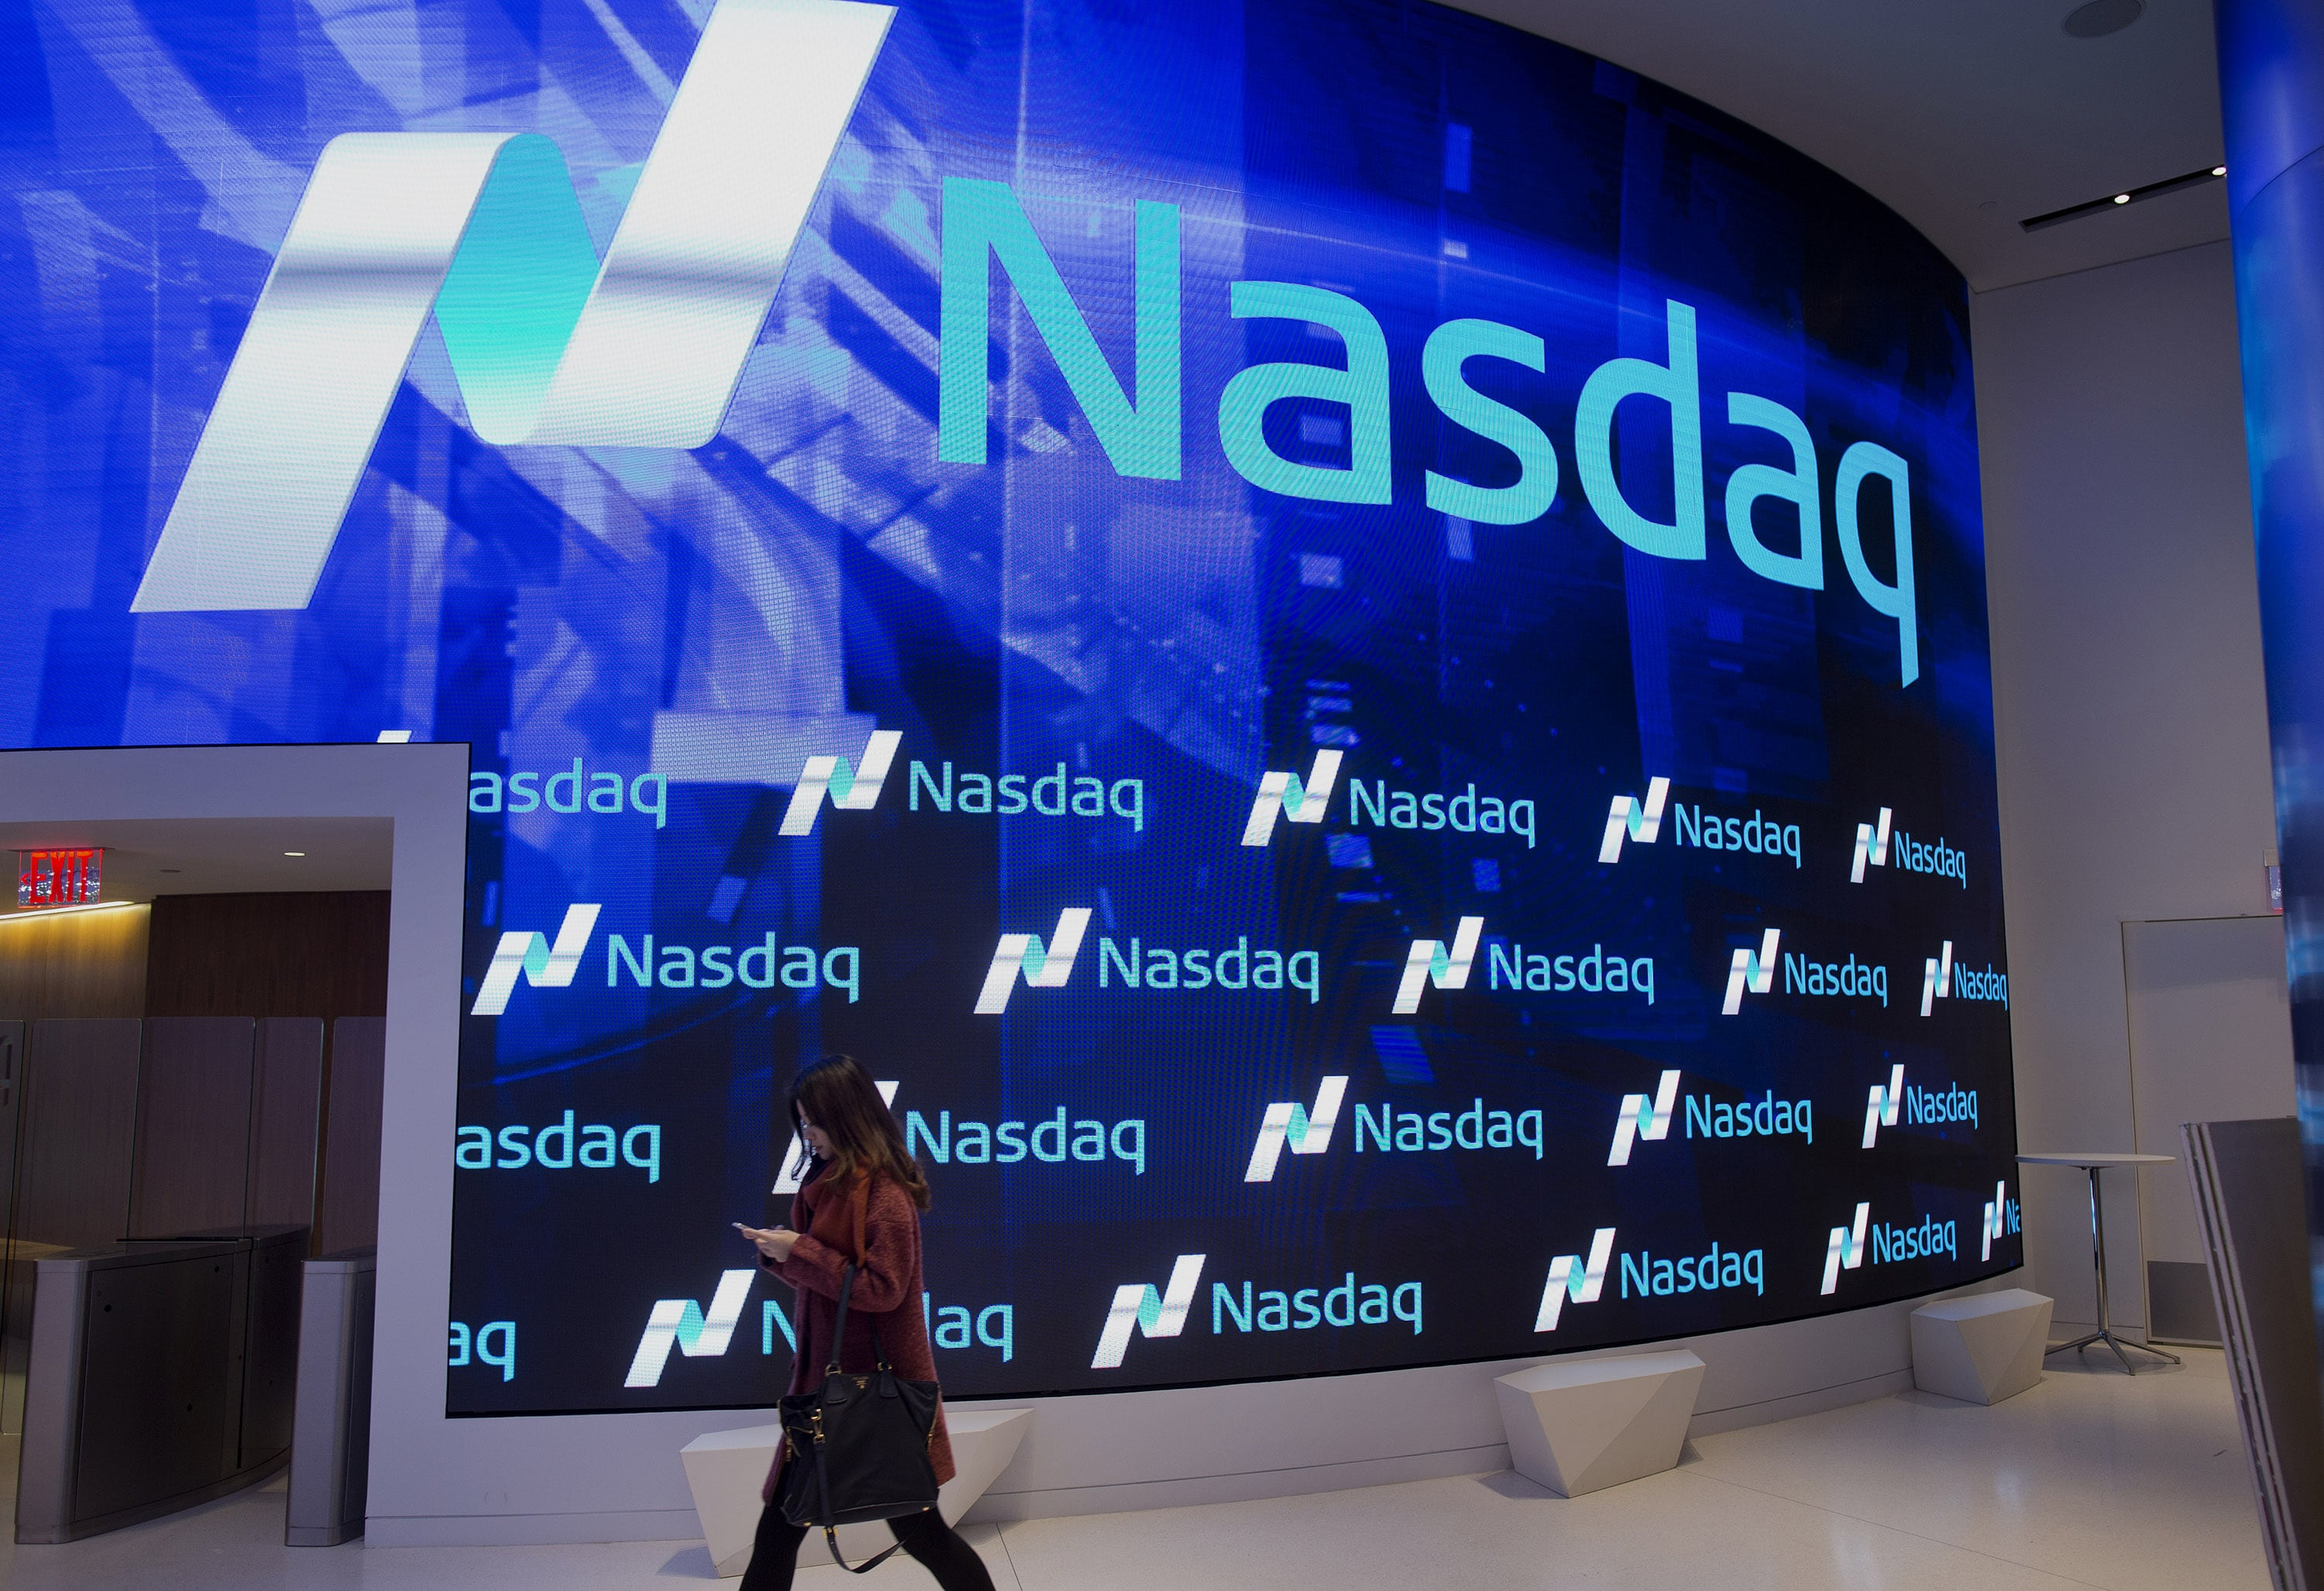 Nasdaq Announces Plans to Acquire Analytics Company eVestment